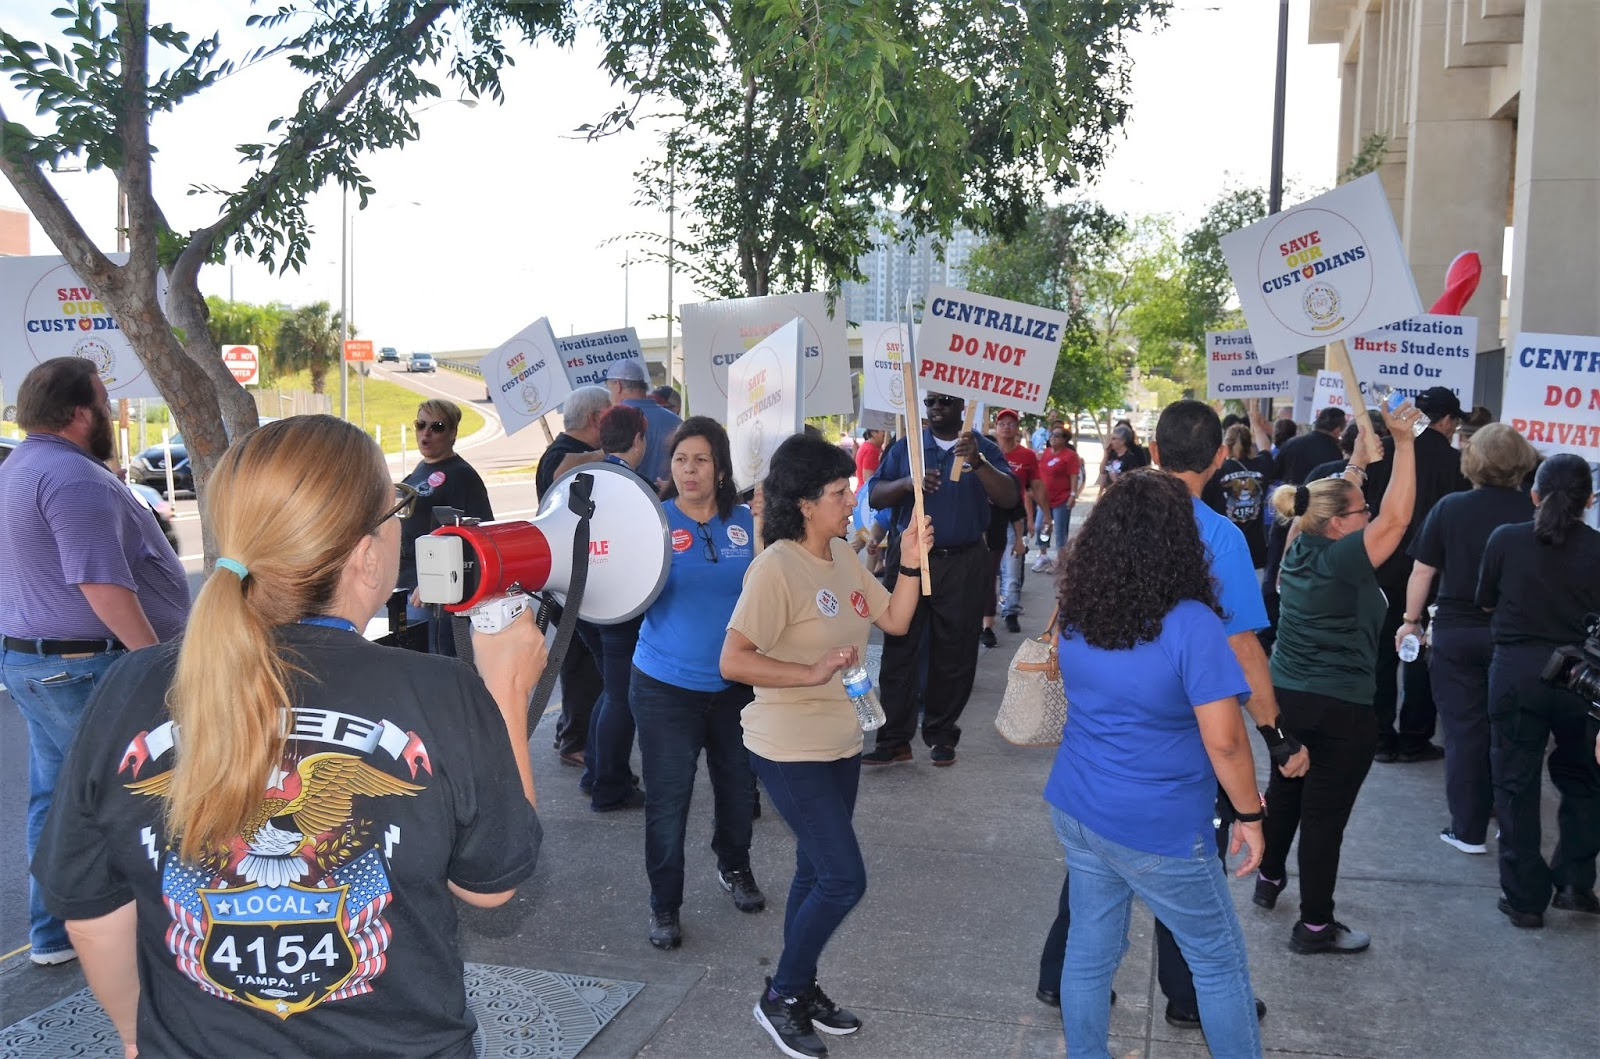 TAMPA: Custodial Workers To Lose Jobs as School District Makes Cuts